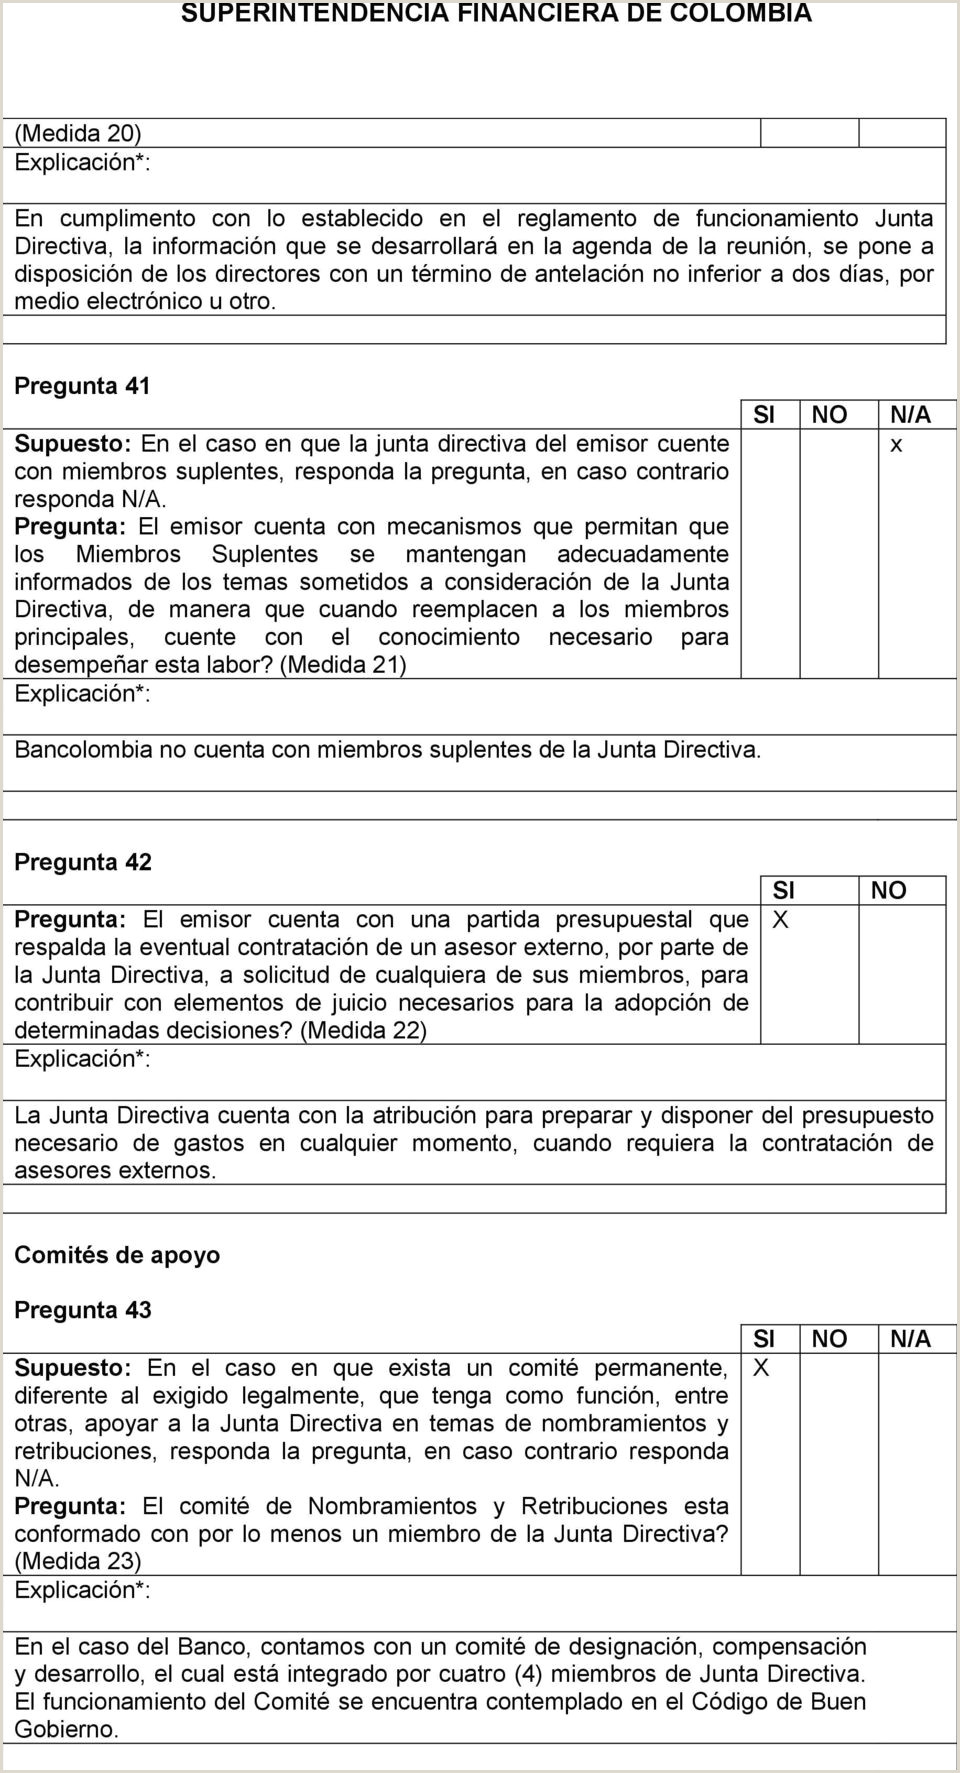 SUPERINTENDENCIA FINANCIERA DE COLOMBIA PDF